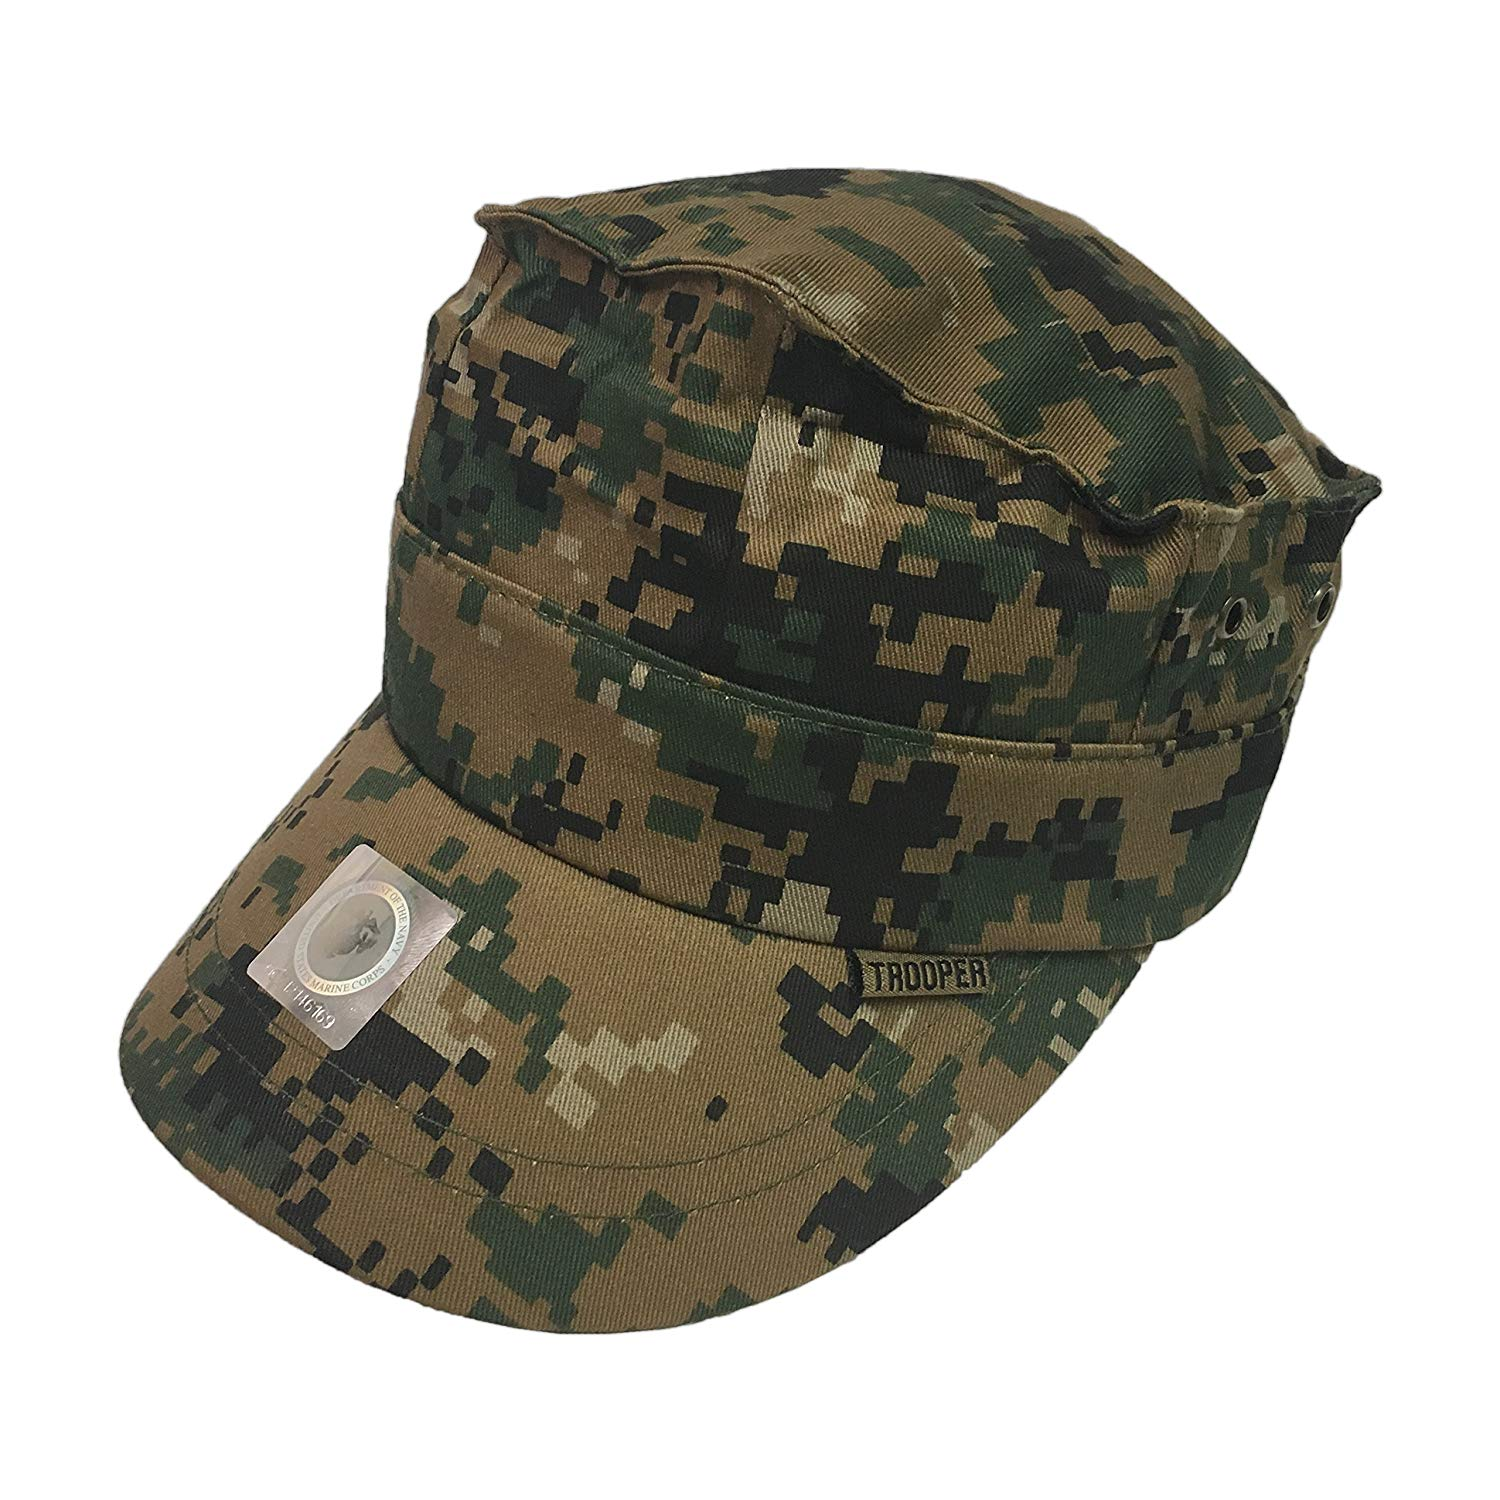 f5a8a466 Get Quotations · Trooper Clothing Brand Woodland Camo 8 Point Cover Youth  Cap - 154-OS